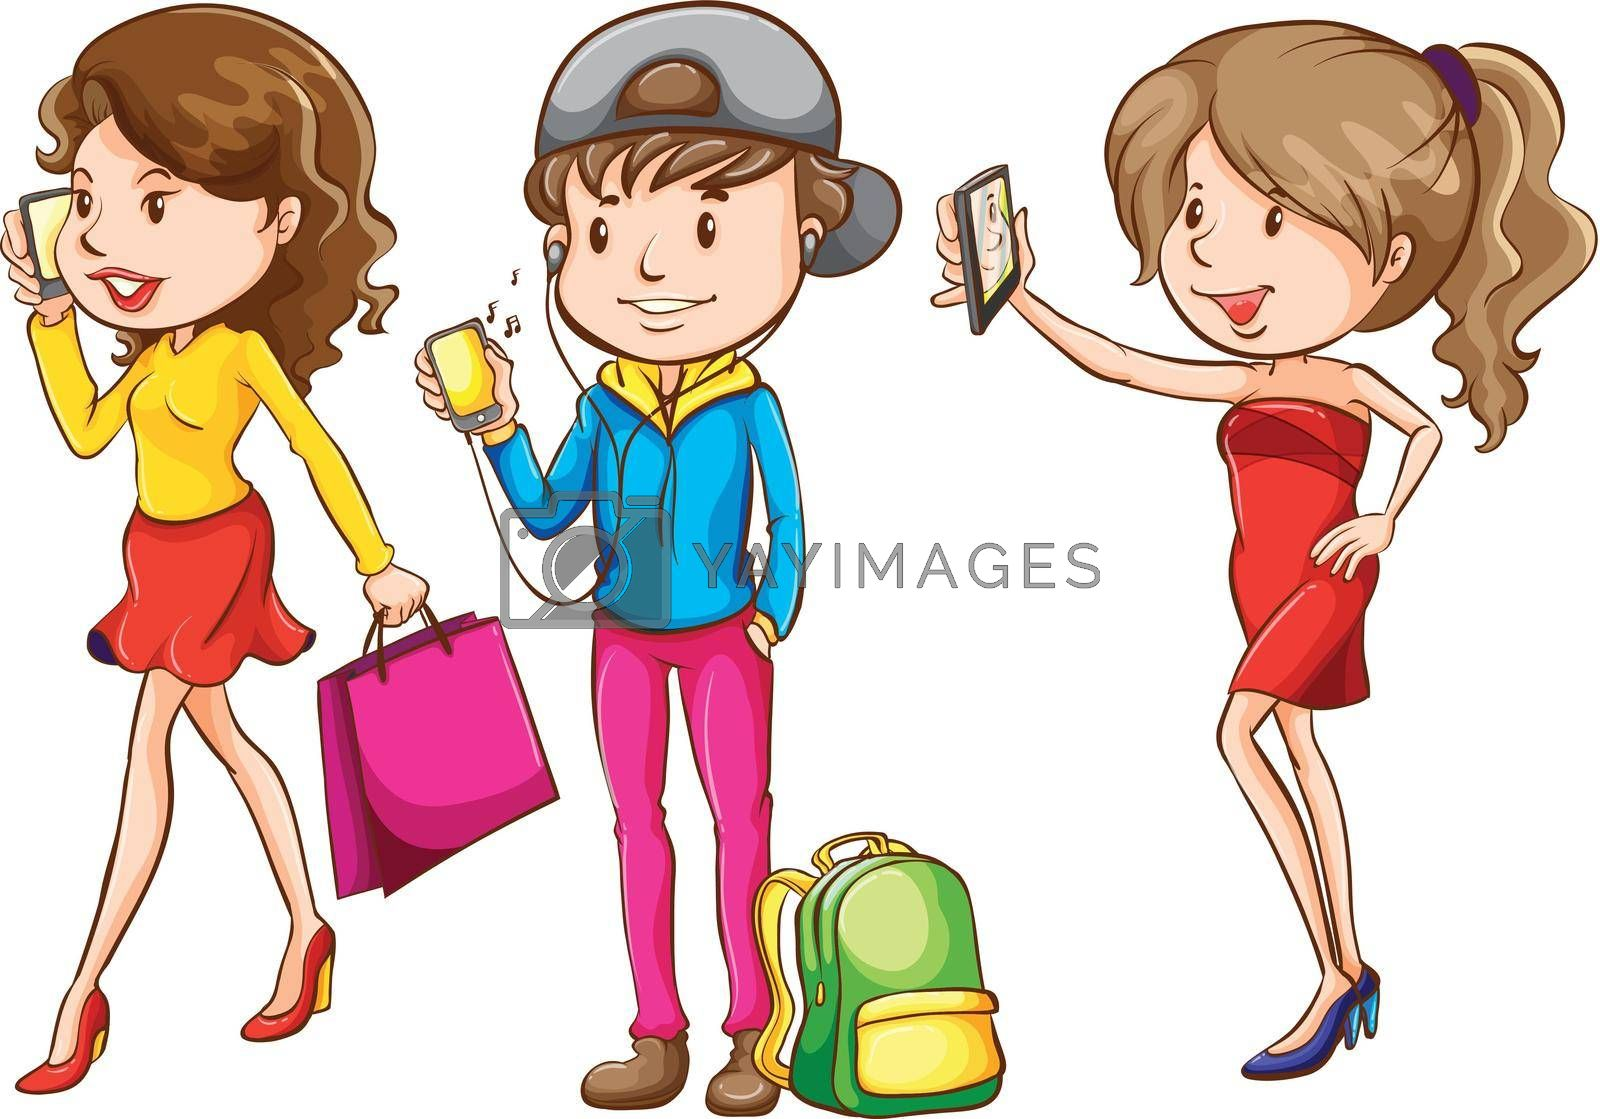 Royalty free image of People with their cellphone by iimages